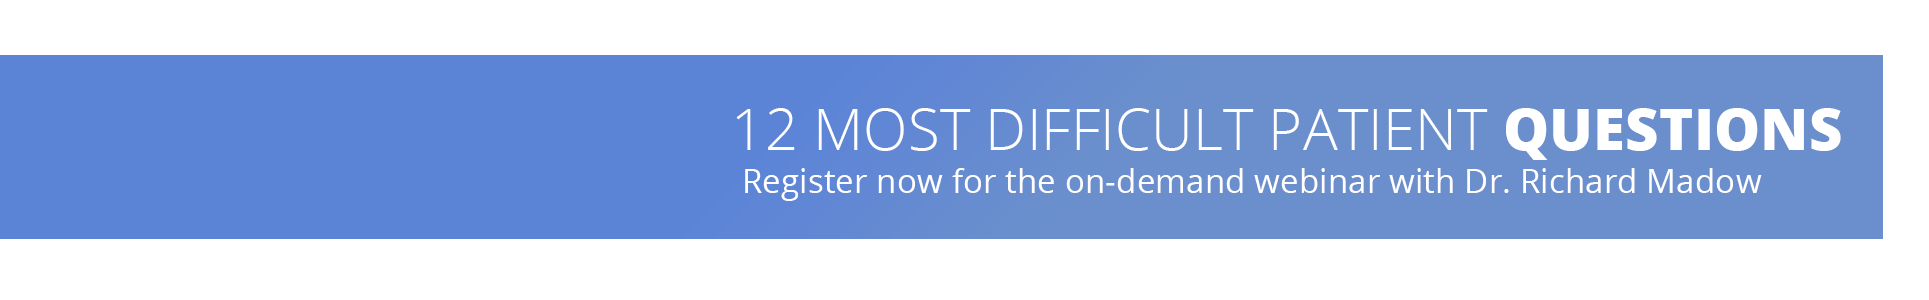 12 most difficult questions on demand webinar